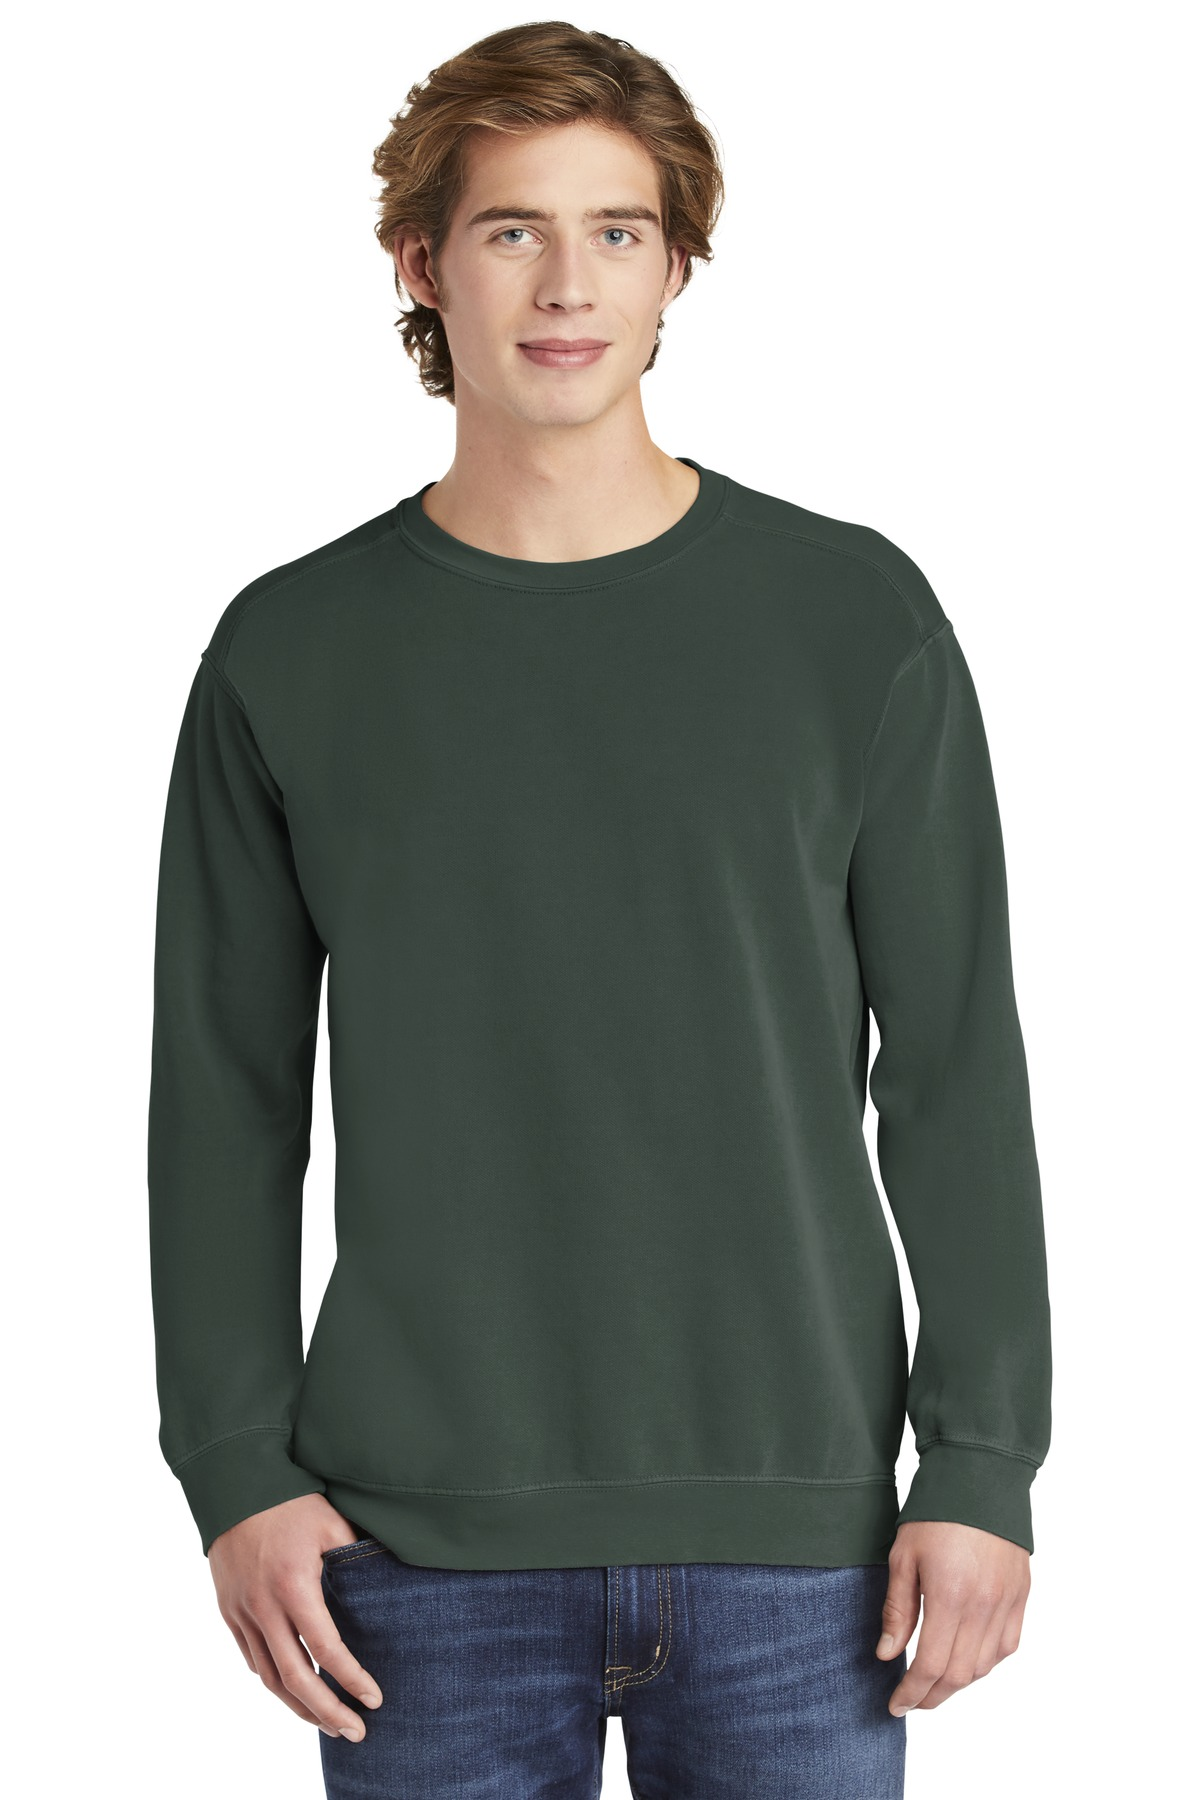 COMFORT COLORS  ®  Ring Spun Crewneck Sweatshirt. 1566 - Blue Spruce